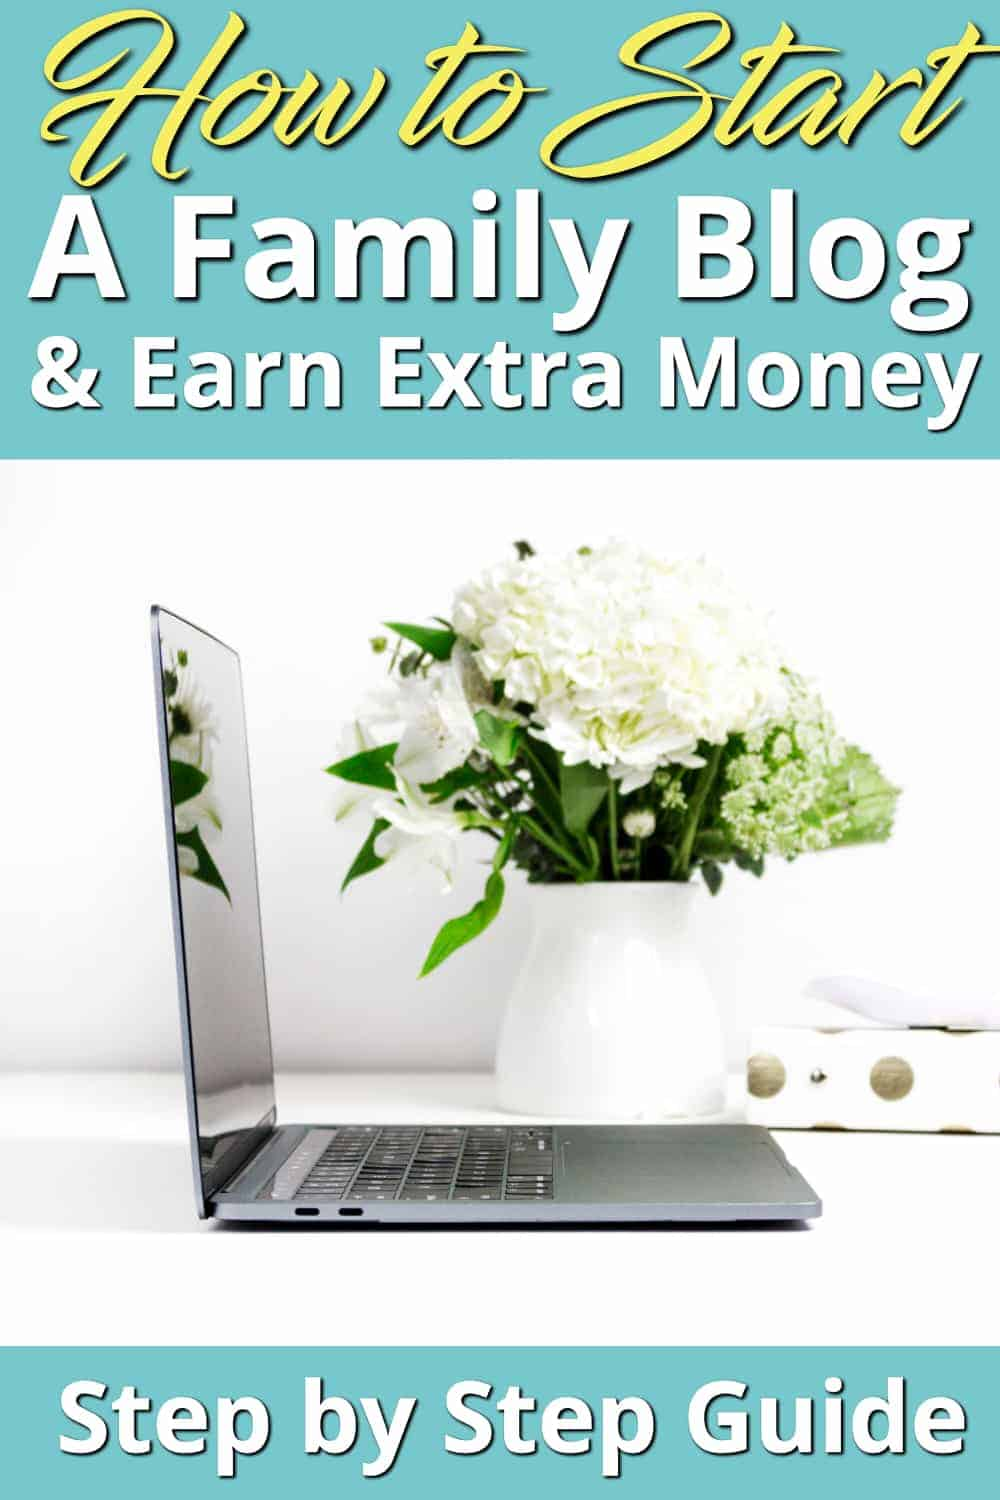 Have you ever thought of starting a family blog to share your stories with family and friends? Wondering how to start a blog quickly Here's how with step by step instructions and a video. Blogging can open the doors to amazing things. Ours has given us an income and led to life changing opportunities. Here's how to start your blog. #blogging #extraincome #sidehustle #money #onlineincome